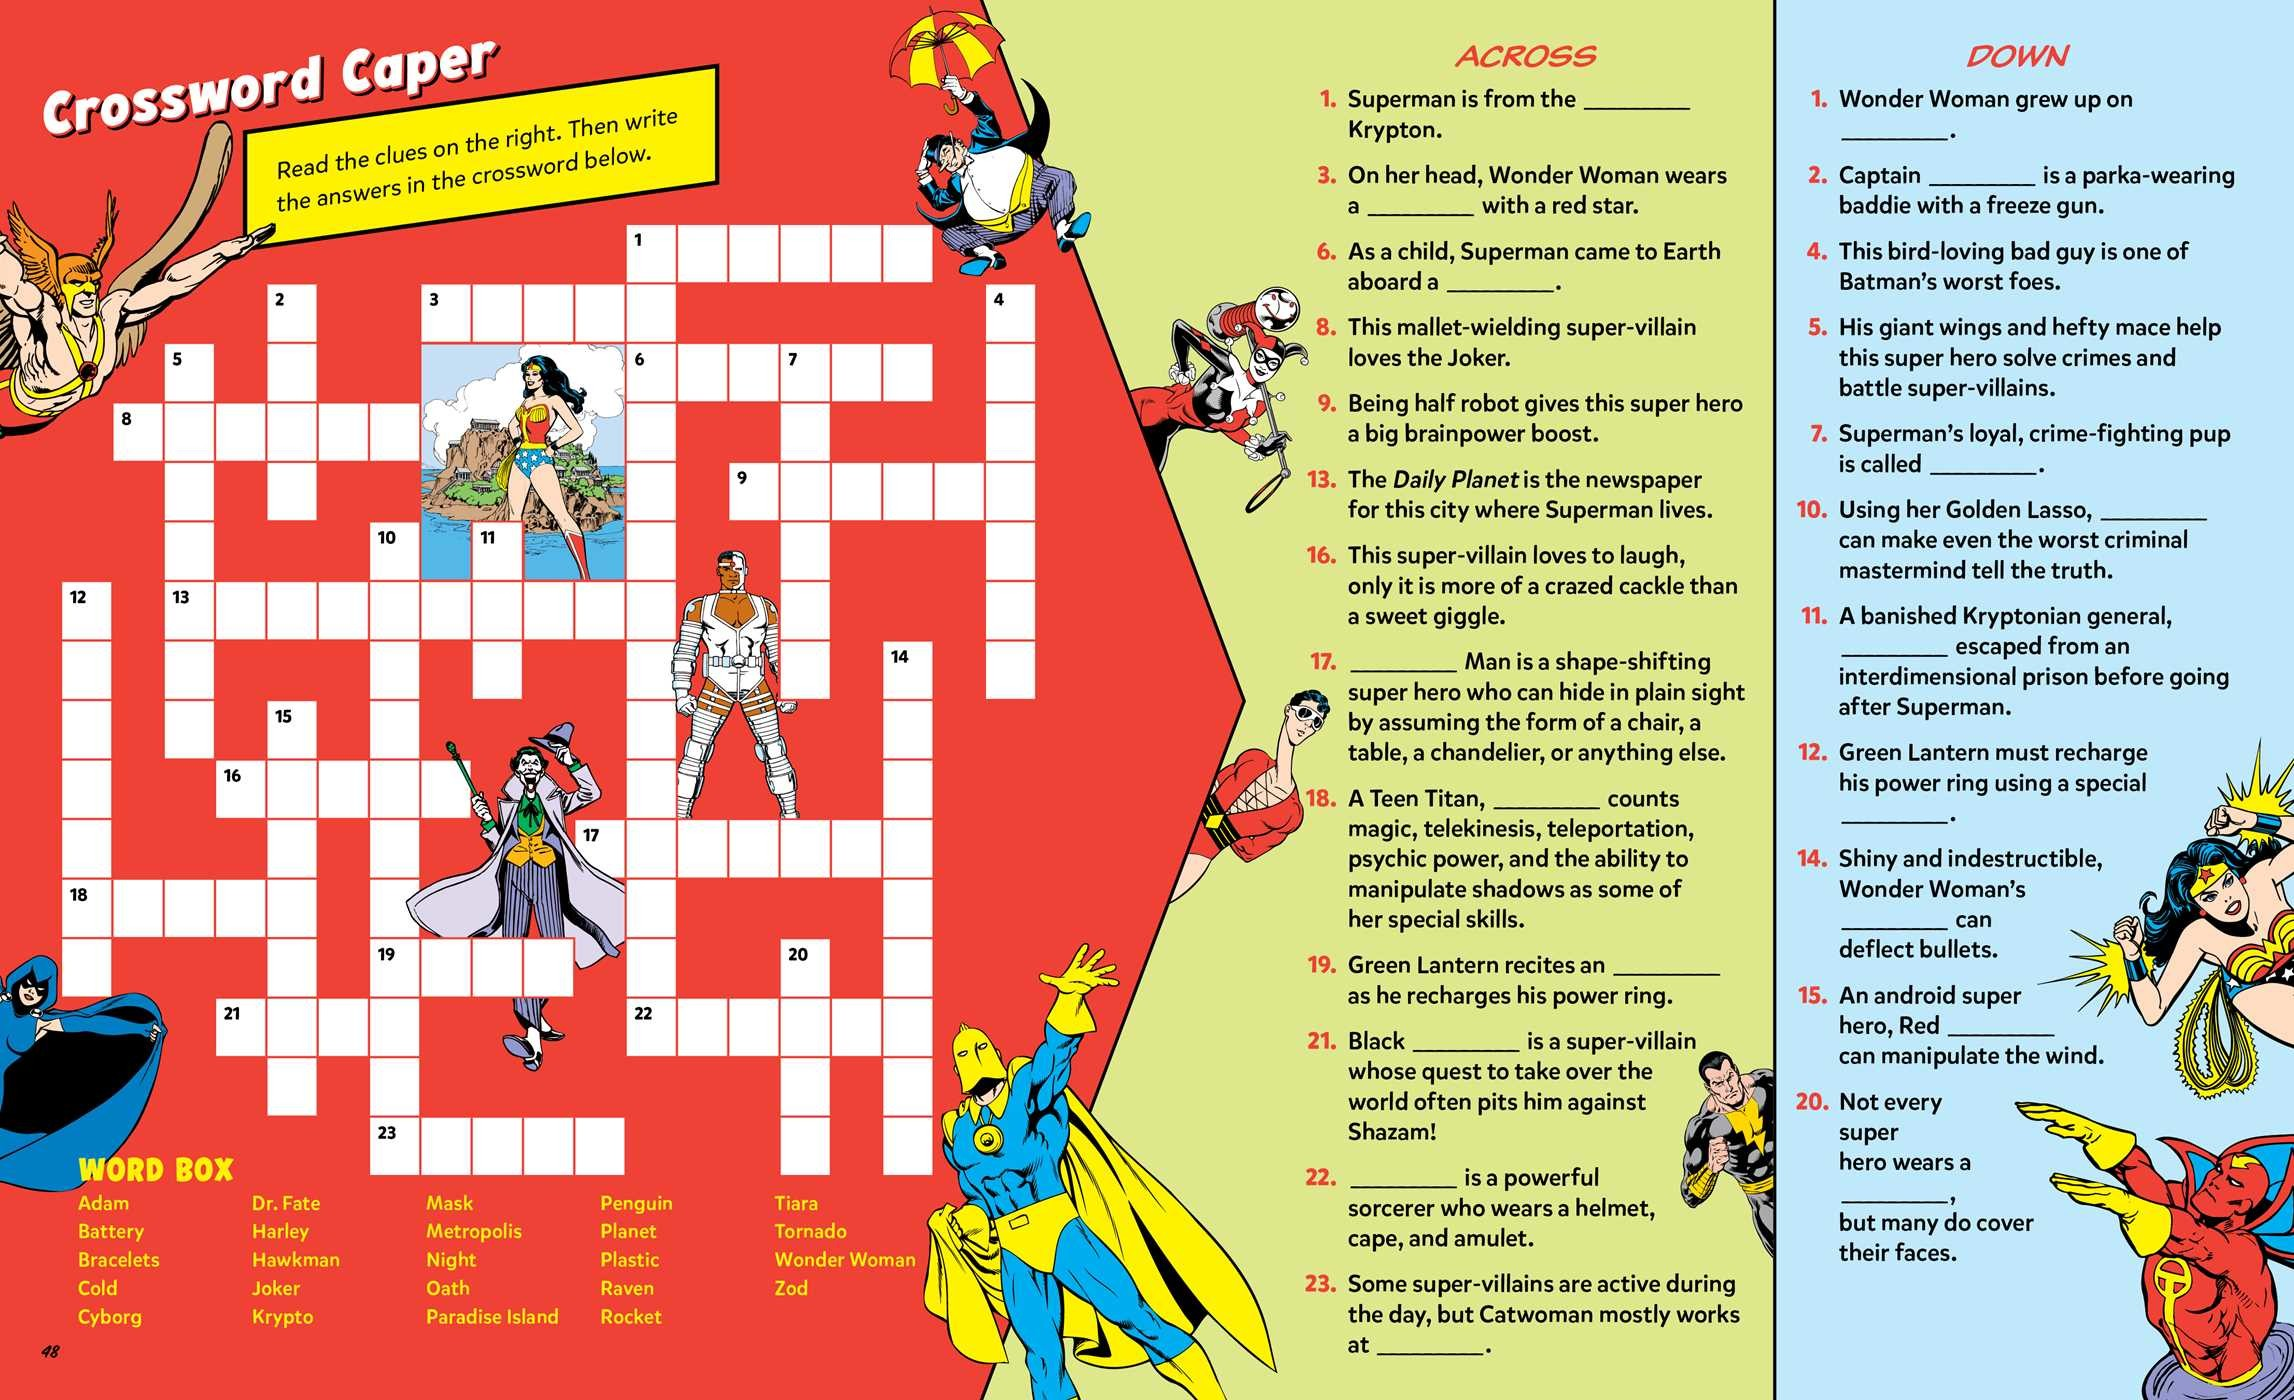 Awesome activities for super heroes 9781941367407.in04